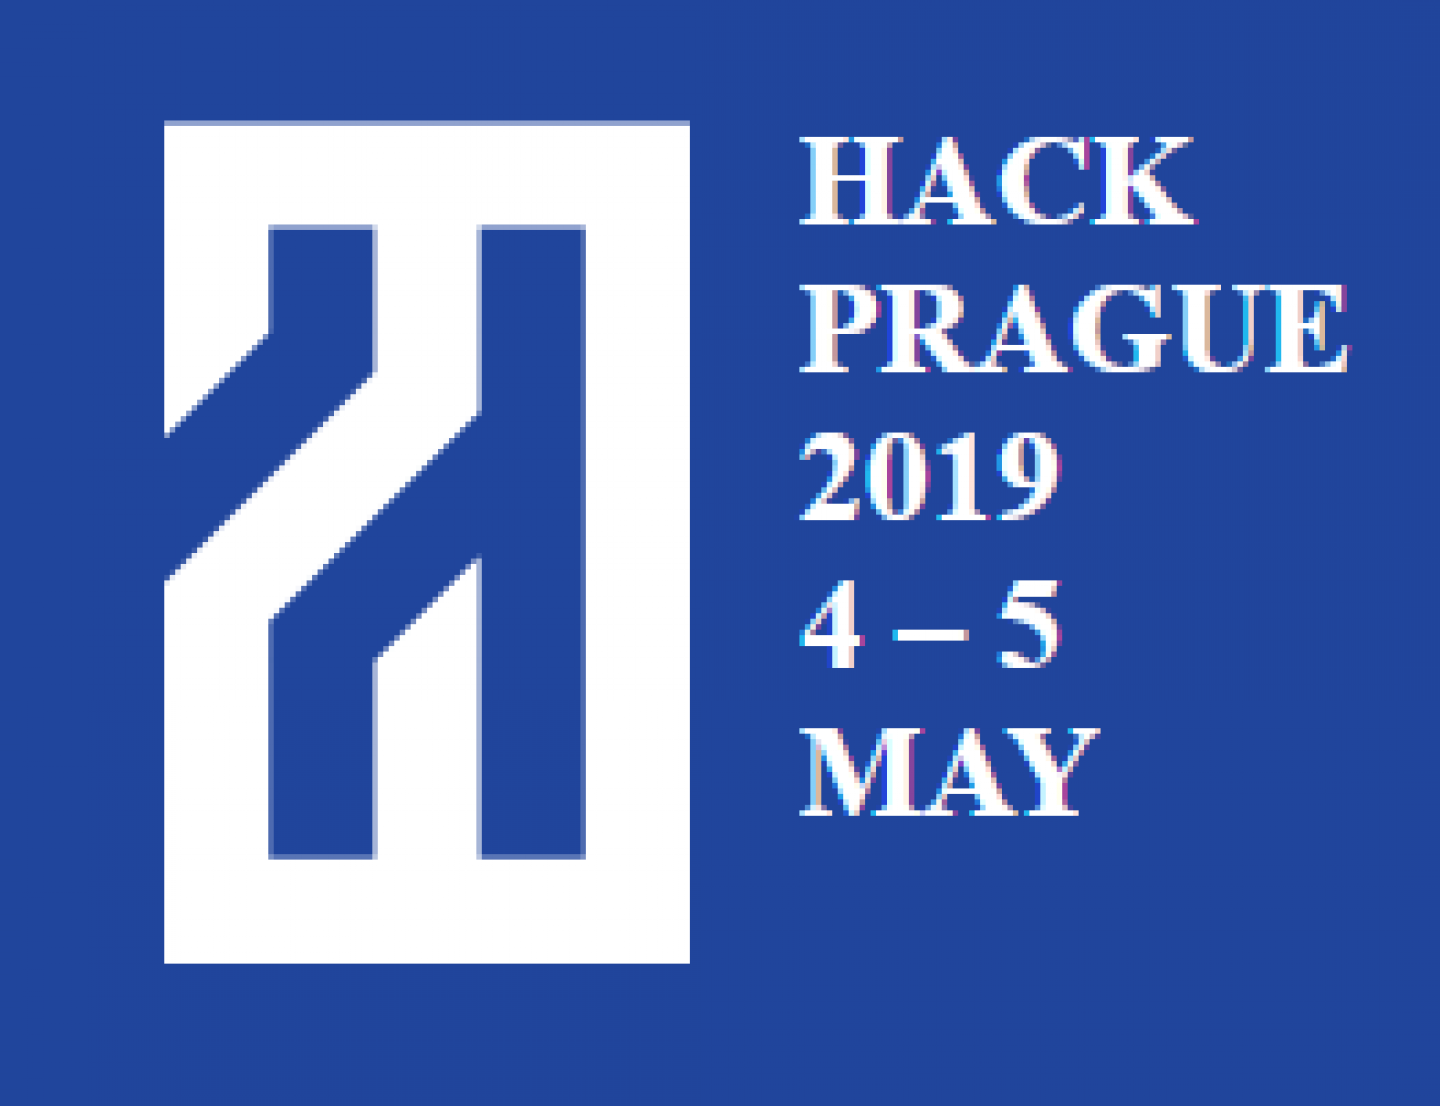 hackprague